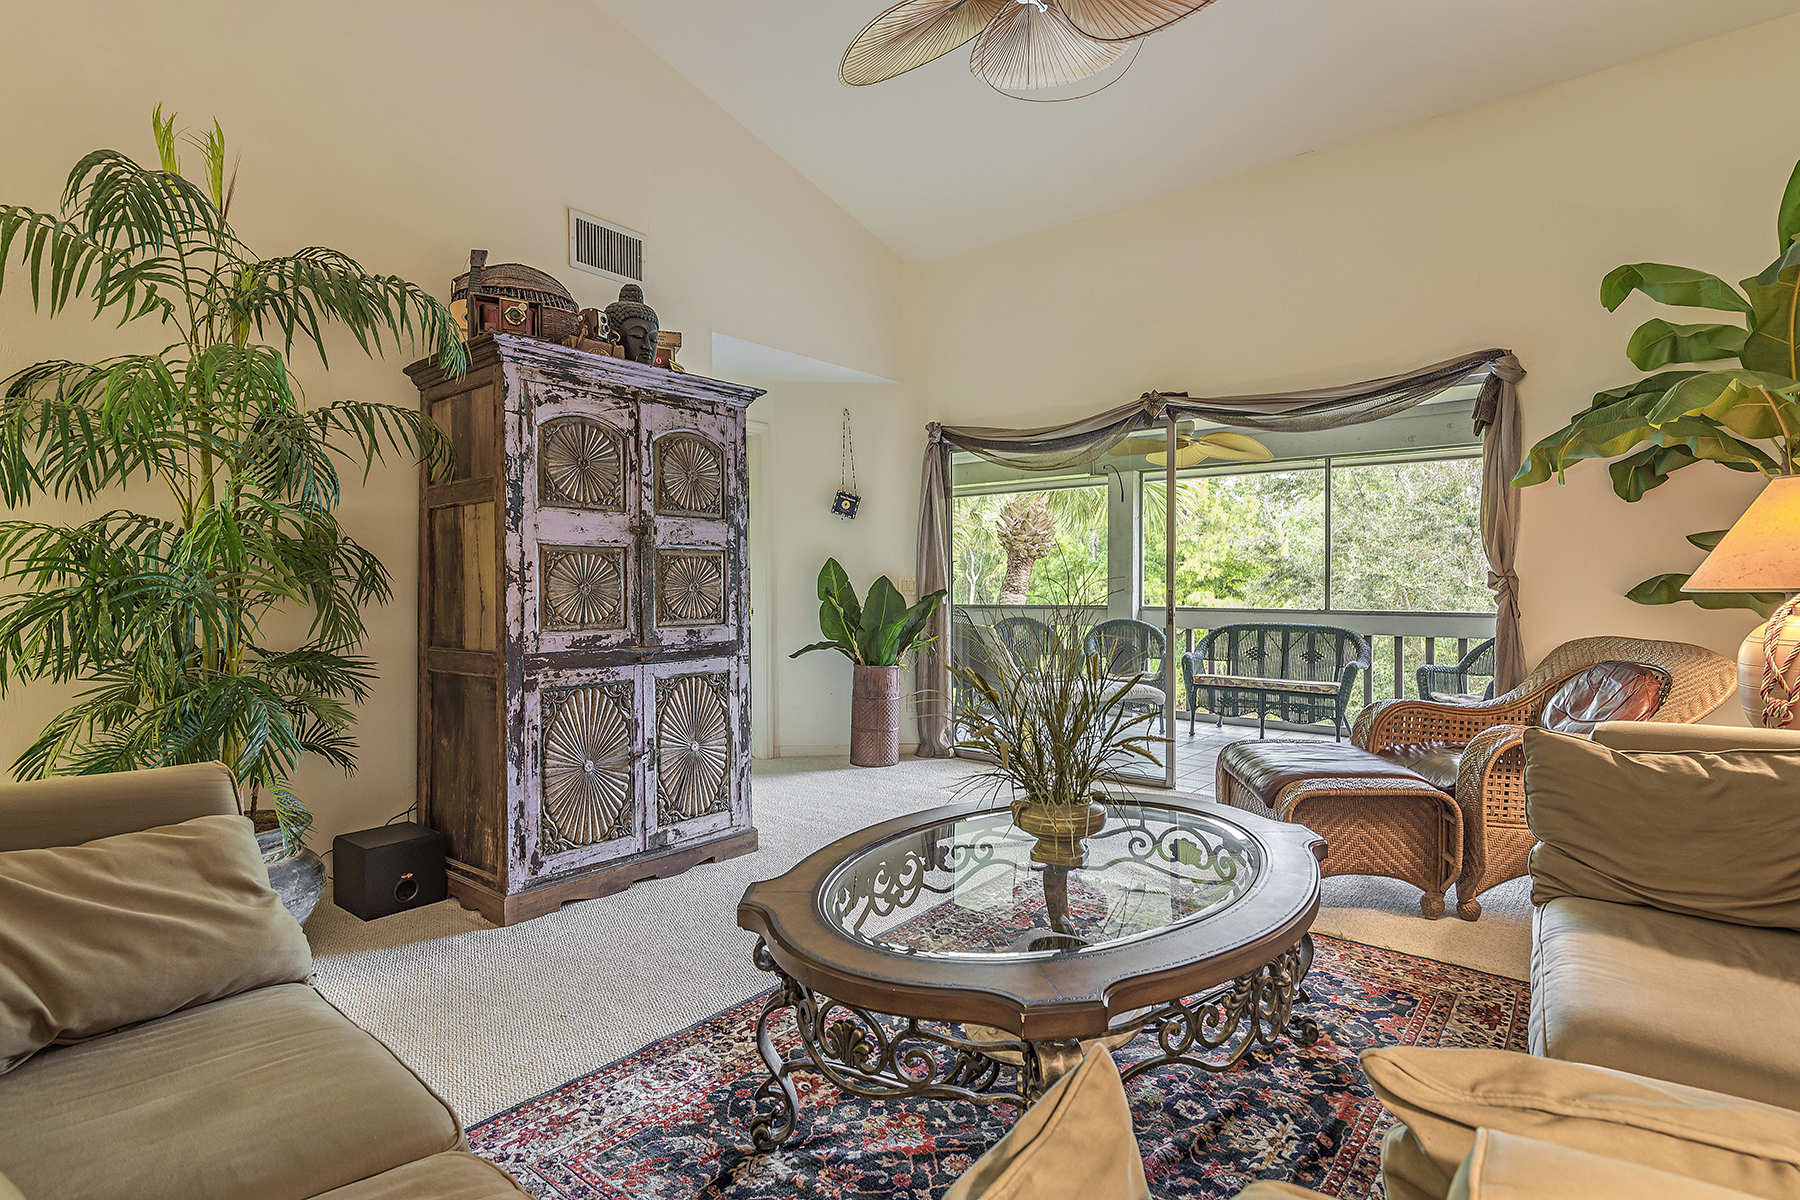 Condominium for Sale at WIGGINS BAY - COLONY AT WIGGINS BAY 662 Wiggins Bay Dr B-22 Naples, Florida, 34110 United States